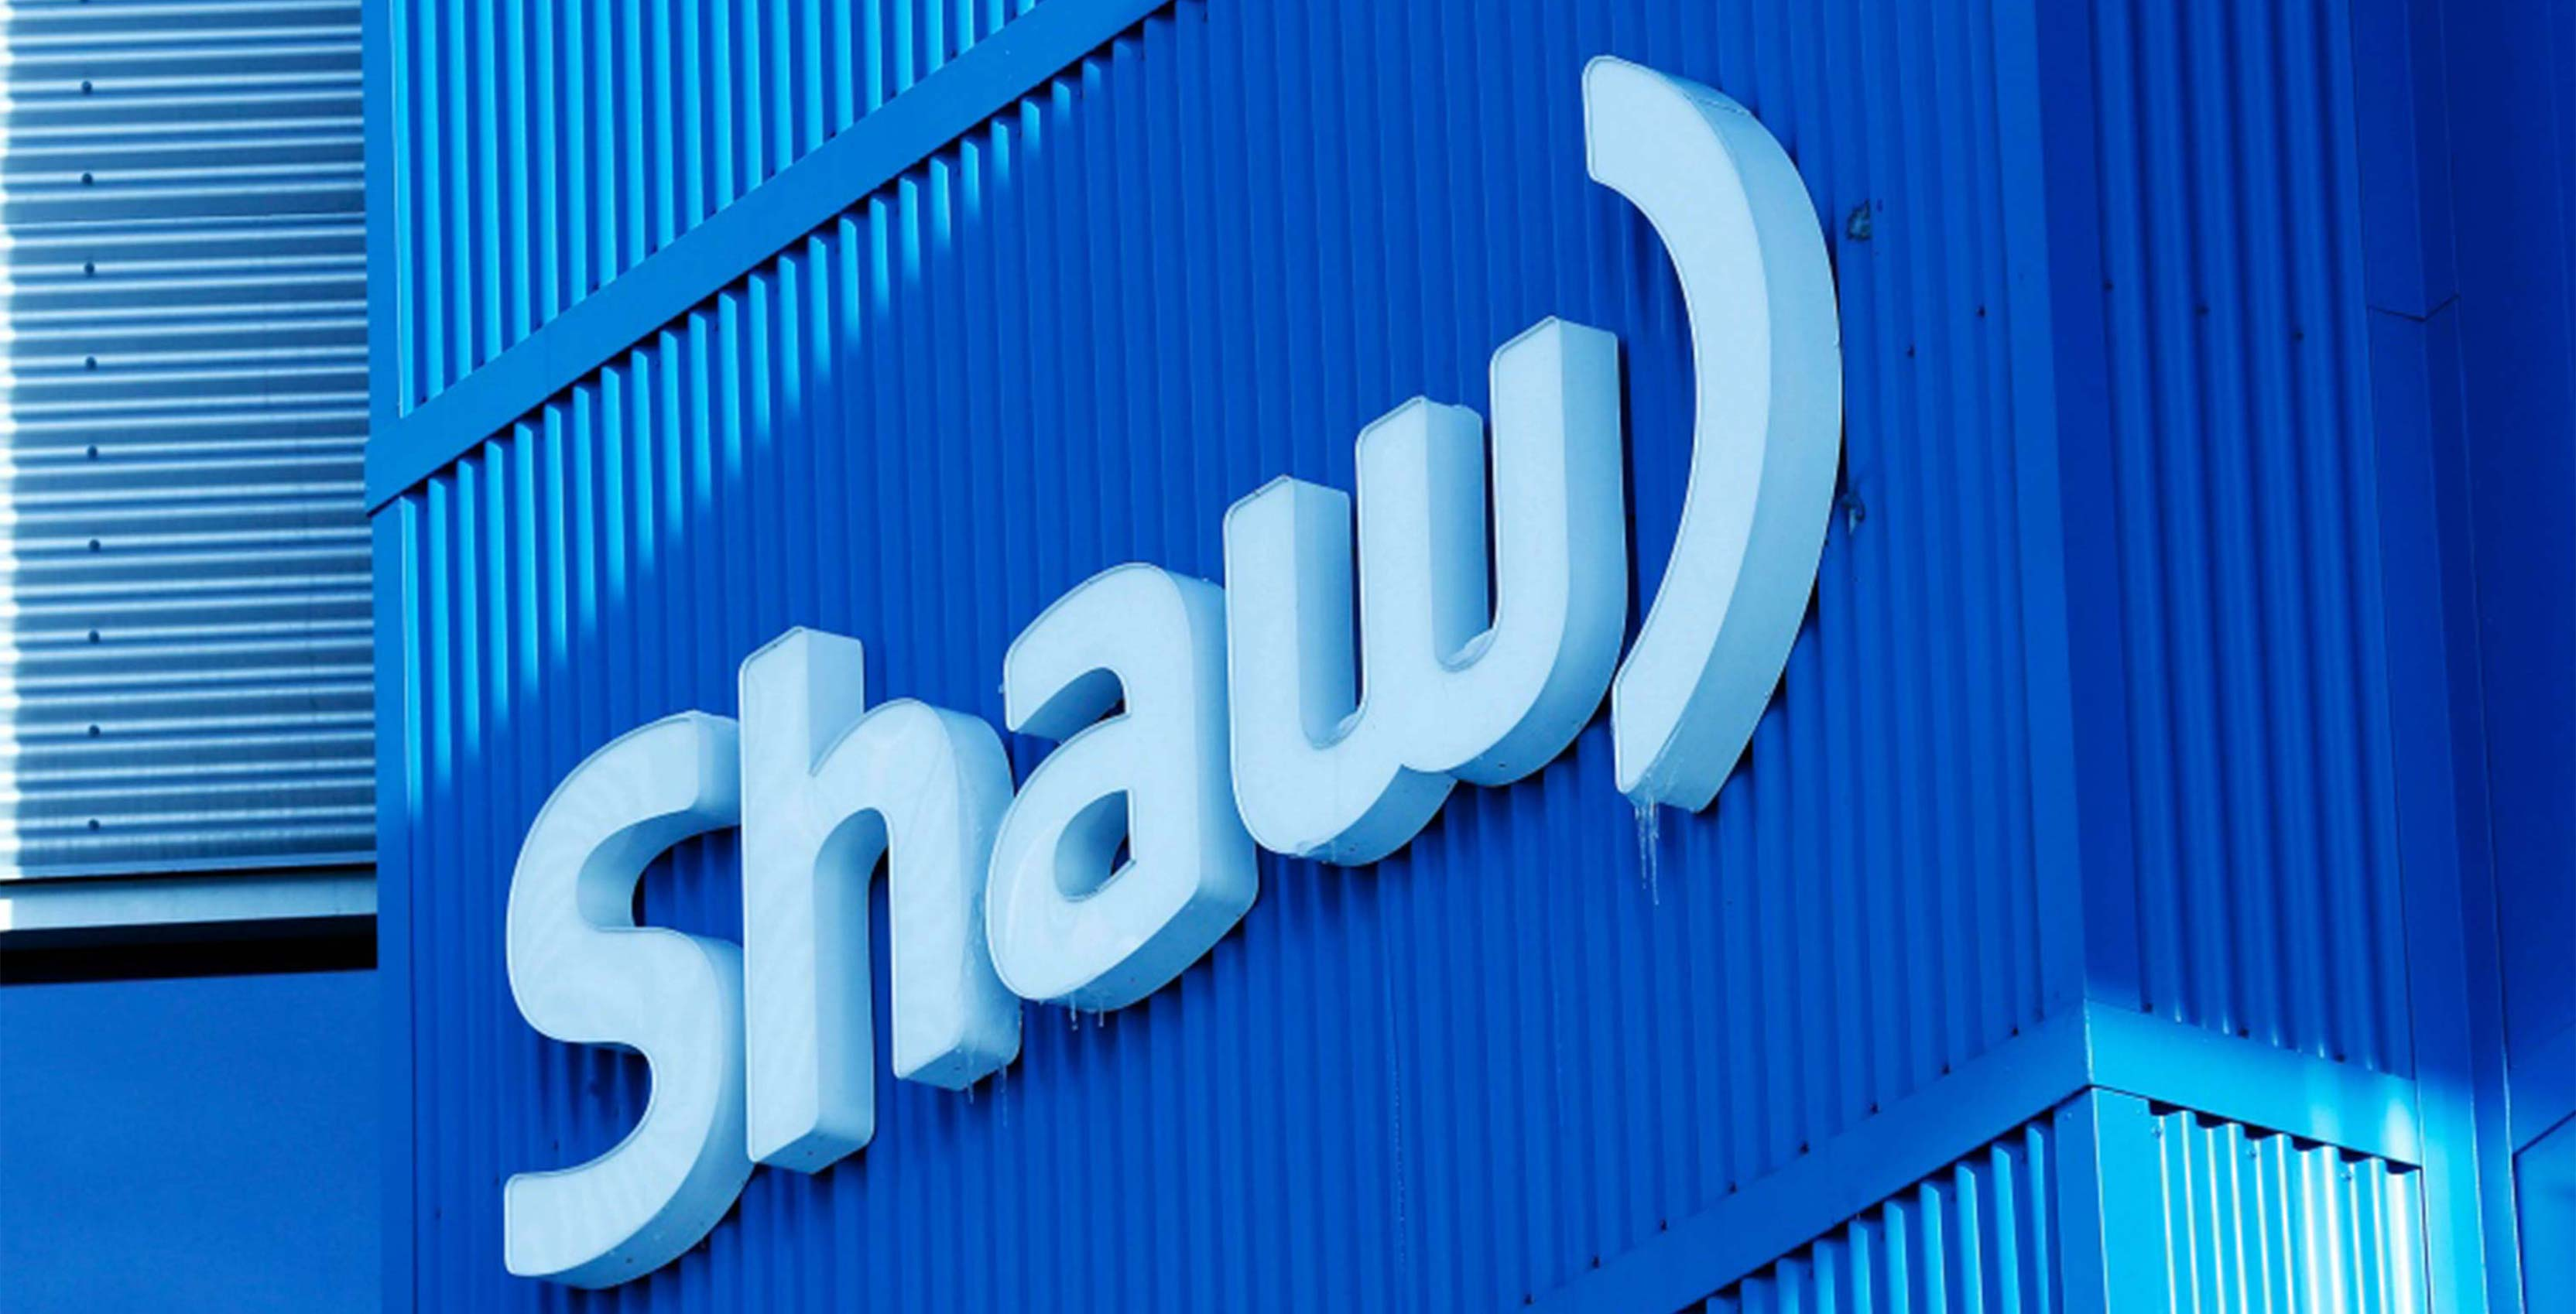 Shaw Communications Inc. (NASDAQ:SJR) To Report Earnings